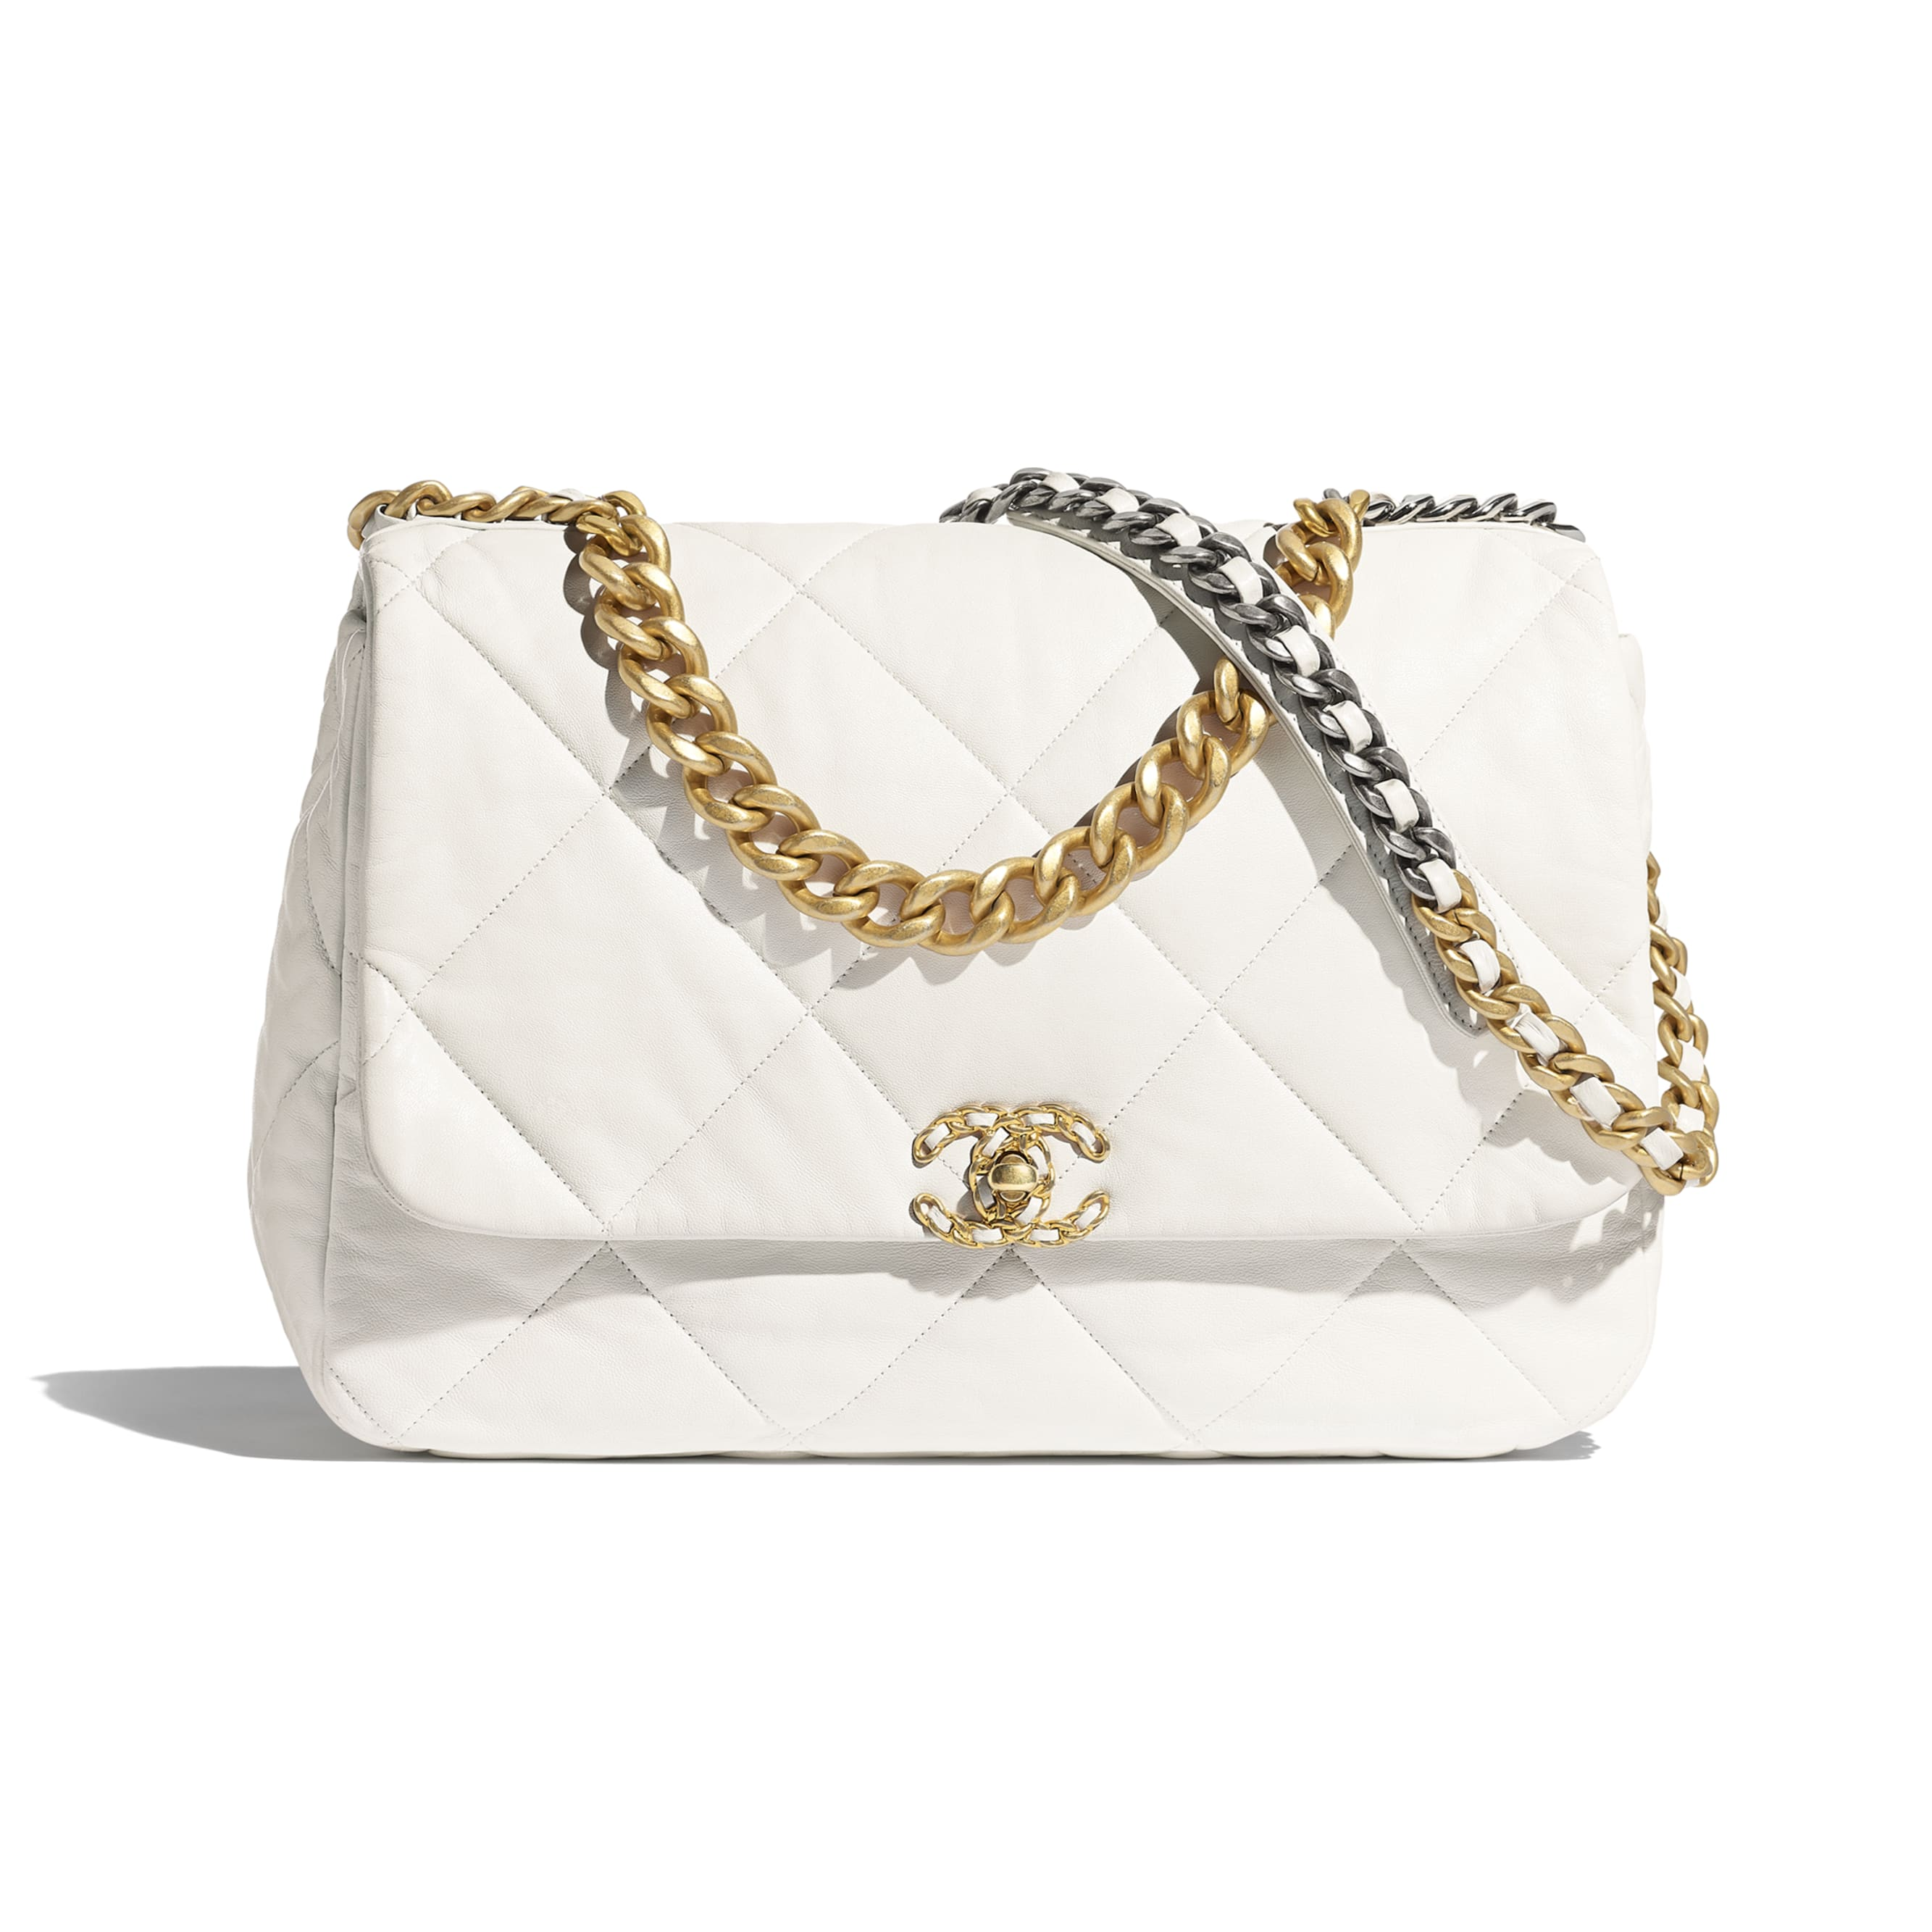 CHANEL 19 Maxi Flap Bag - White - Goatskin, Gold-Tone, Silver-Tone & Ruthenium-Finish Metal - Default view - see standard sized version